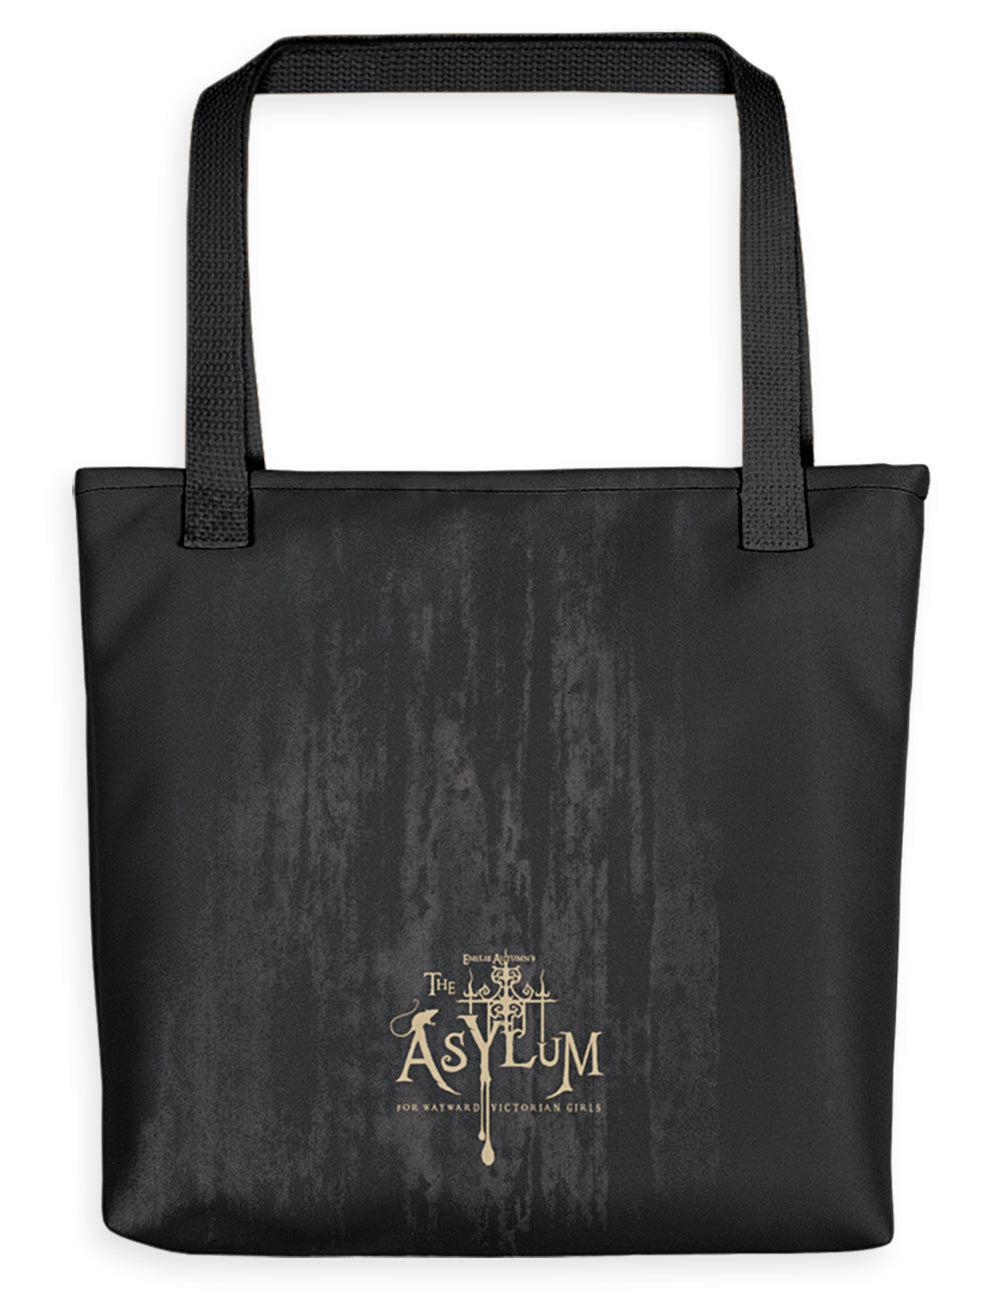 Asylum Gaslight Luxury Tote Bag - Asylum Emporium